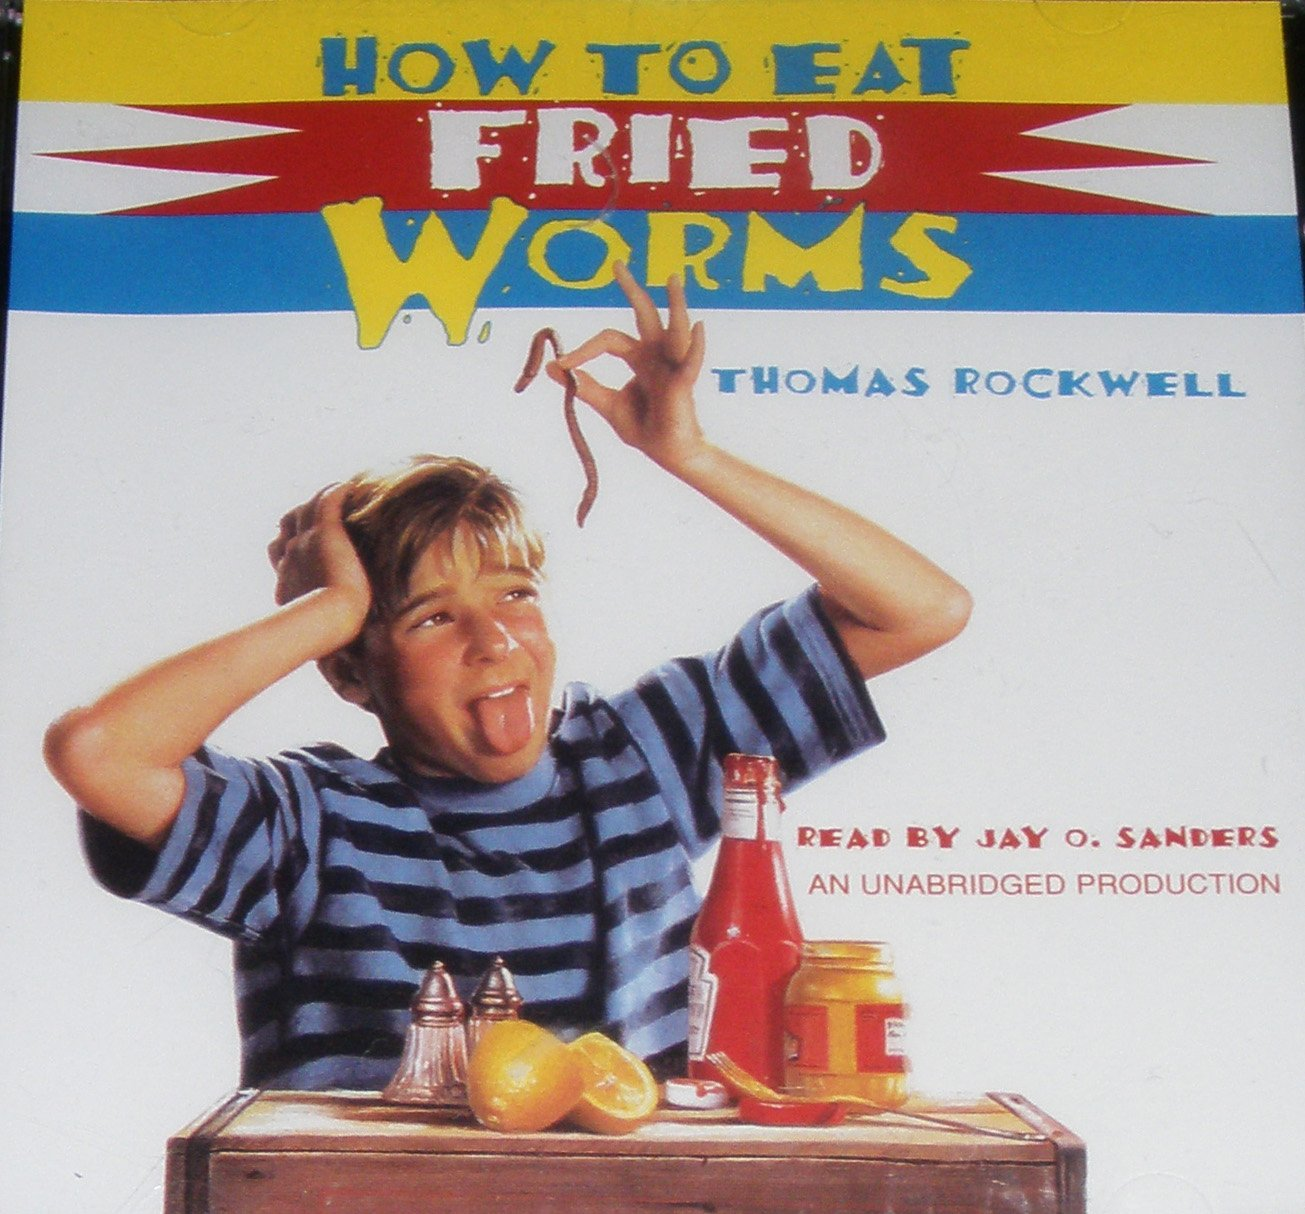 How To Eat Fried Worms: Thomas Rockwell, Jay O Sanders: 9781400099443:  Amazon